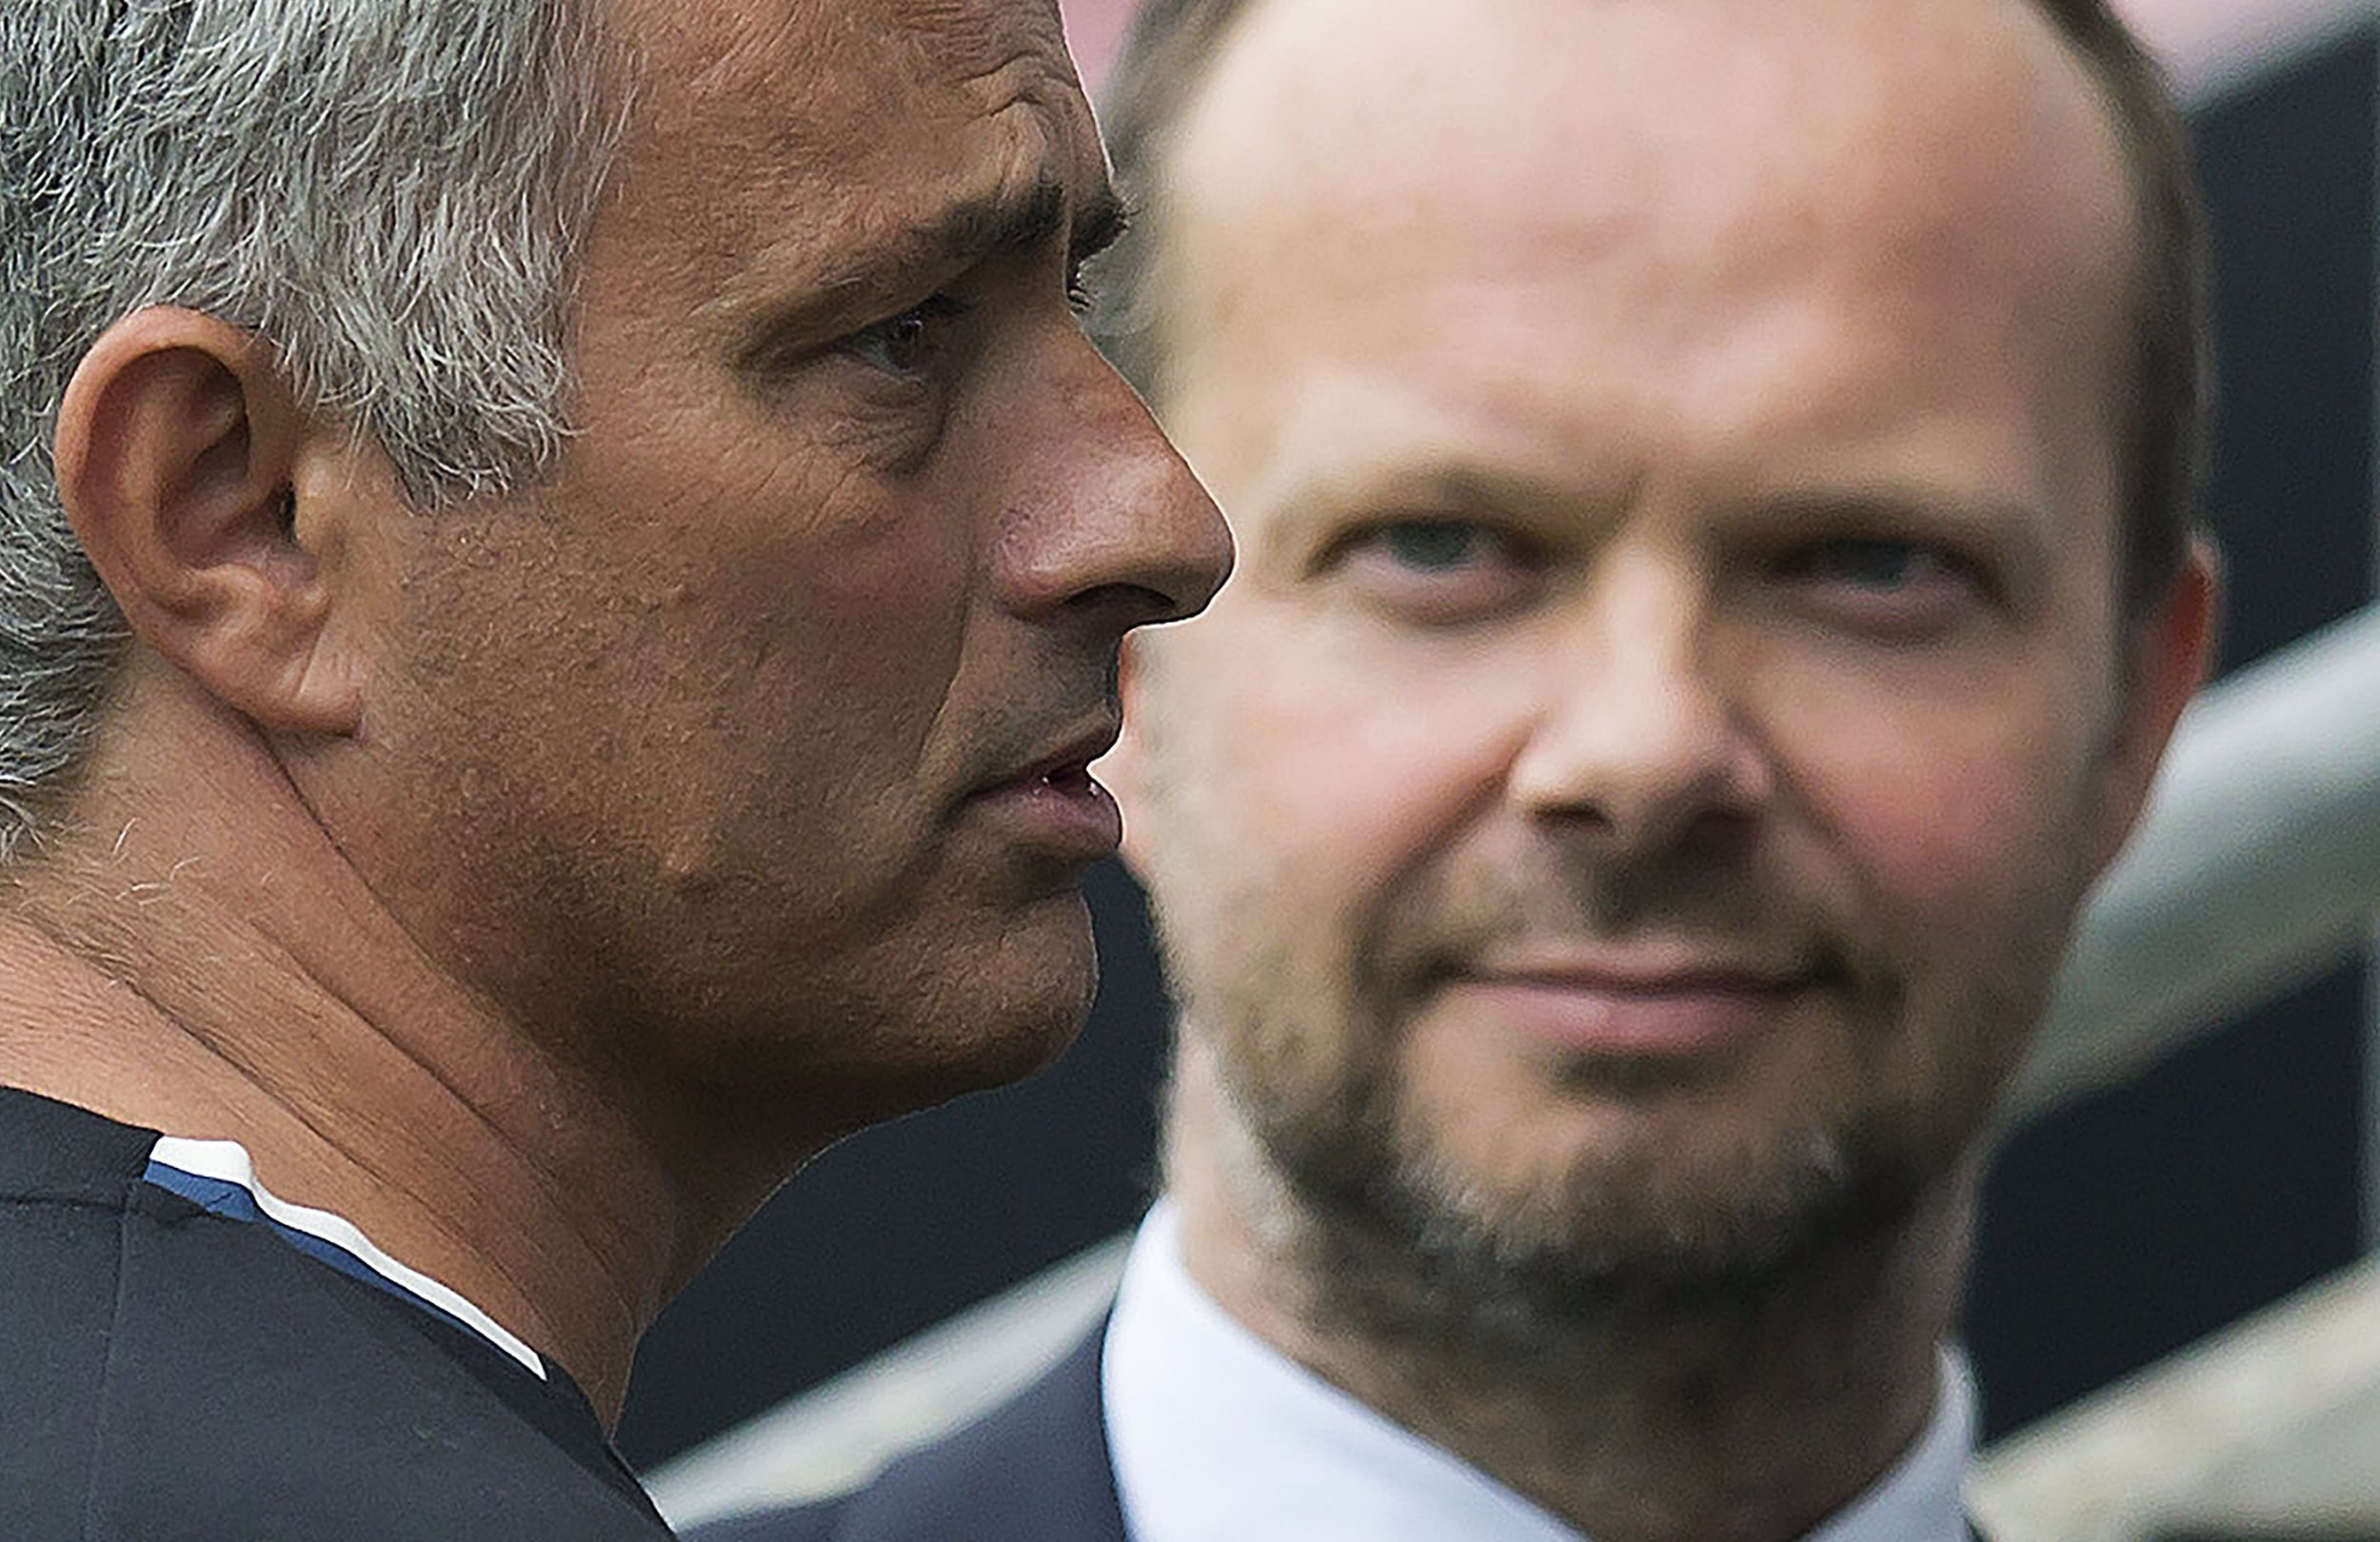 (FILES) In this file photo taken on July 16, 2016 Manchester United's executive vice-chairman Ed Woodward (R) listens as Manchester United's Portuguese manager Jose Mourinho talks with former Manchester United player Bobby Charlton (not pictured) following the pre-season friendly football match between Wigan Athletic and Manchester United at the DW stadium in Wigan, northwest England, on July 16, 2016. - Jose Mourinho on August 24, 2018 denied a rift with executive vice-chairman Ed Woodward despite growing speculation over the power structure at Manchester United. (Photo by JON SUPER / AFP) / RESTRICTED TO EDITORIAL USE. No use with unauthorized audio, video, data, fixture lists, club/league logos or 'live' services. Online in-match use limited to 75 images, no video emulation. No use in betting, games or single club/league/player publications. / JON SUPER/AFP/Getty Images